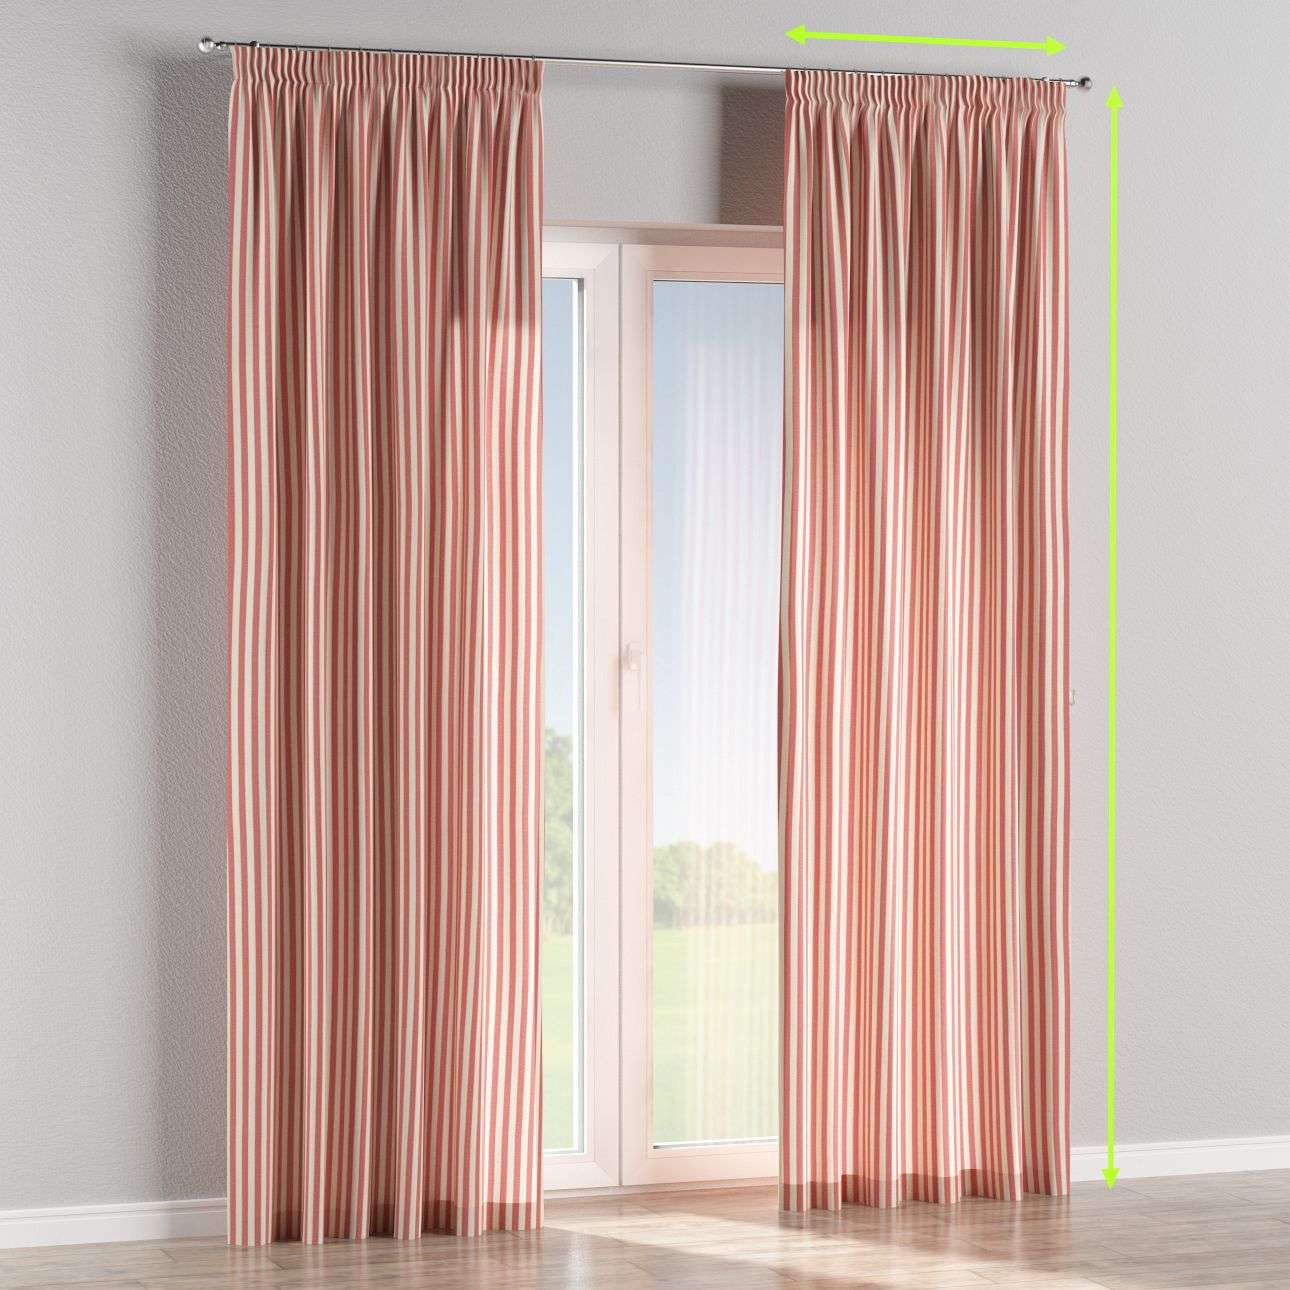 Pencil pleat lined curtains in collection Quadro, fabric: 136-17